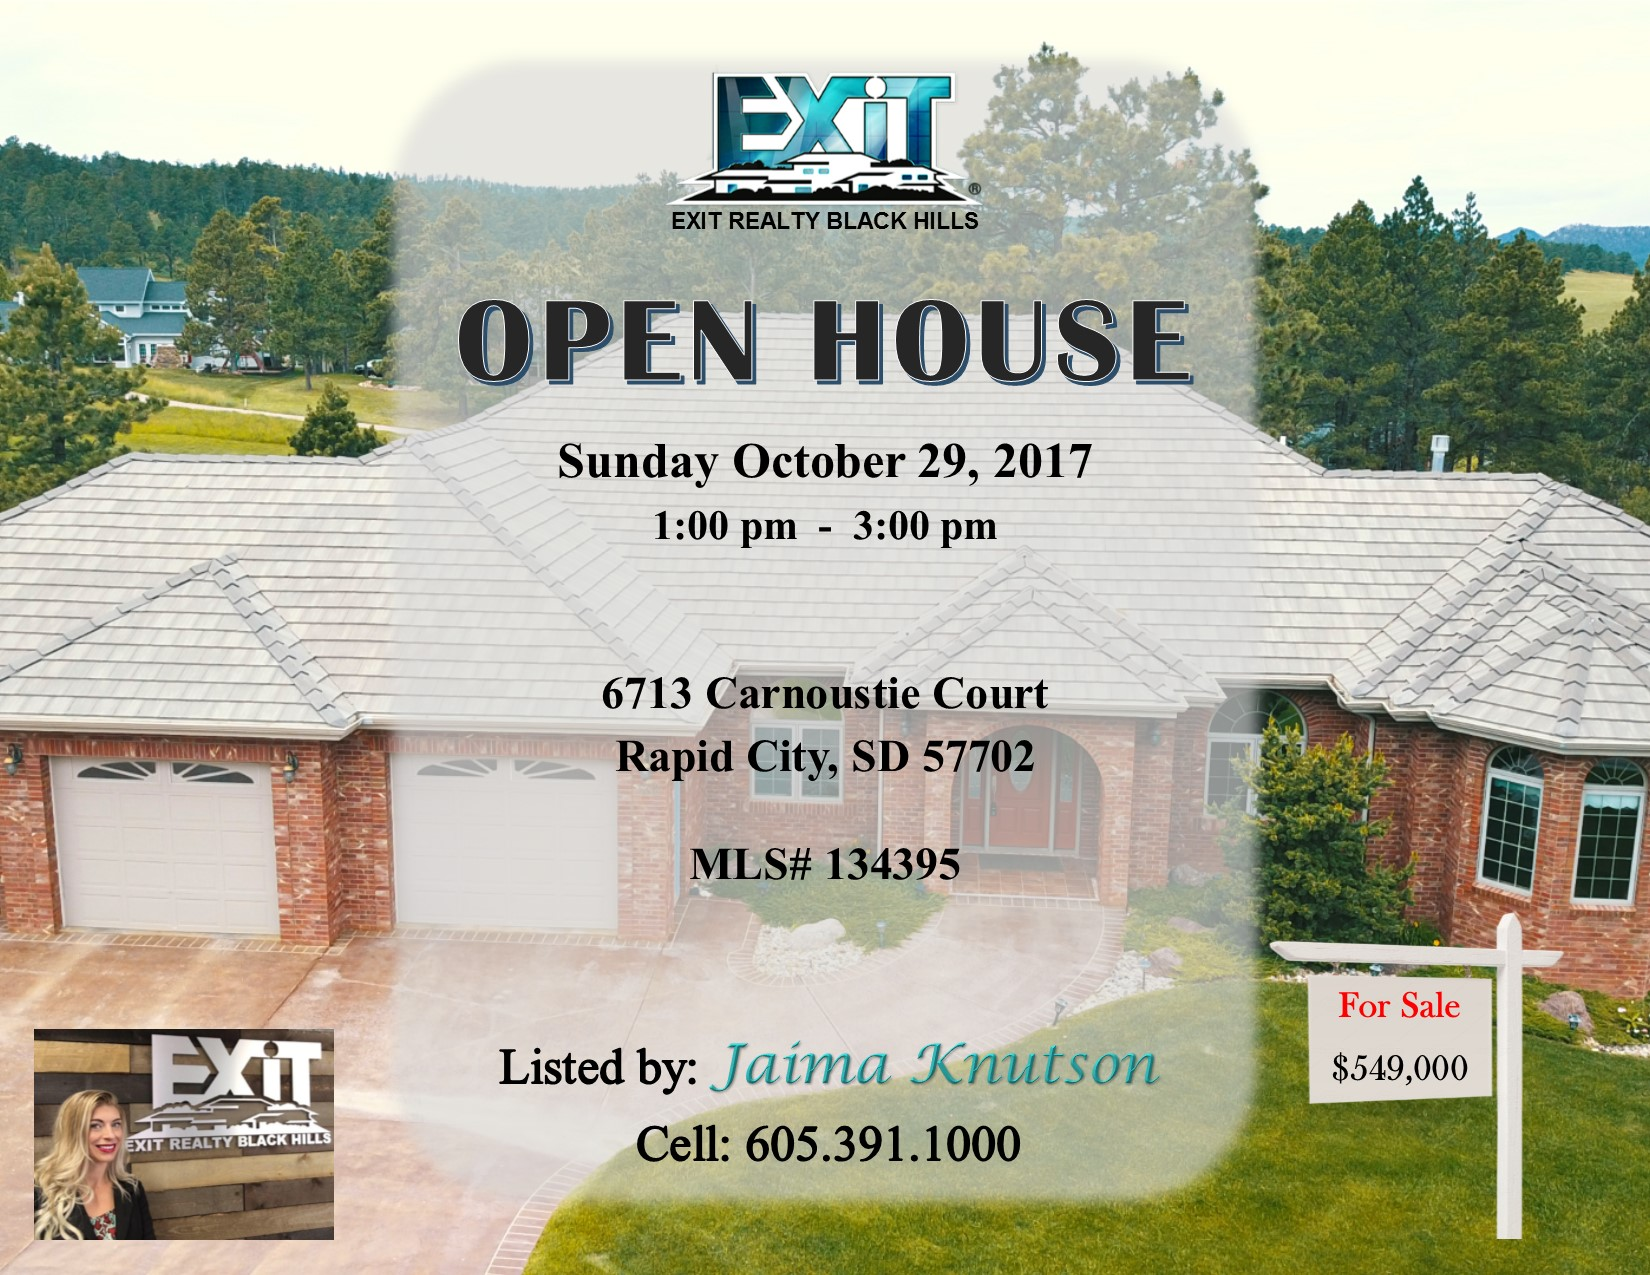 OPEN HOUSE October 29, 2017